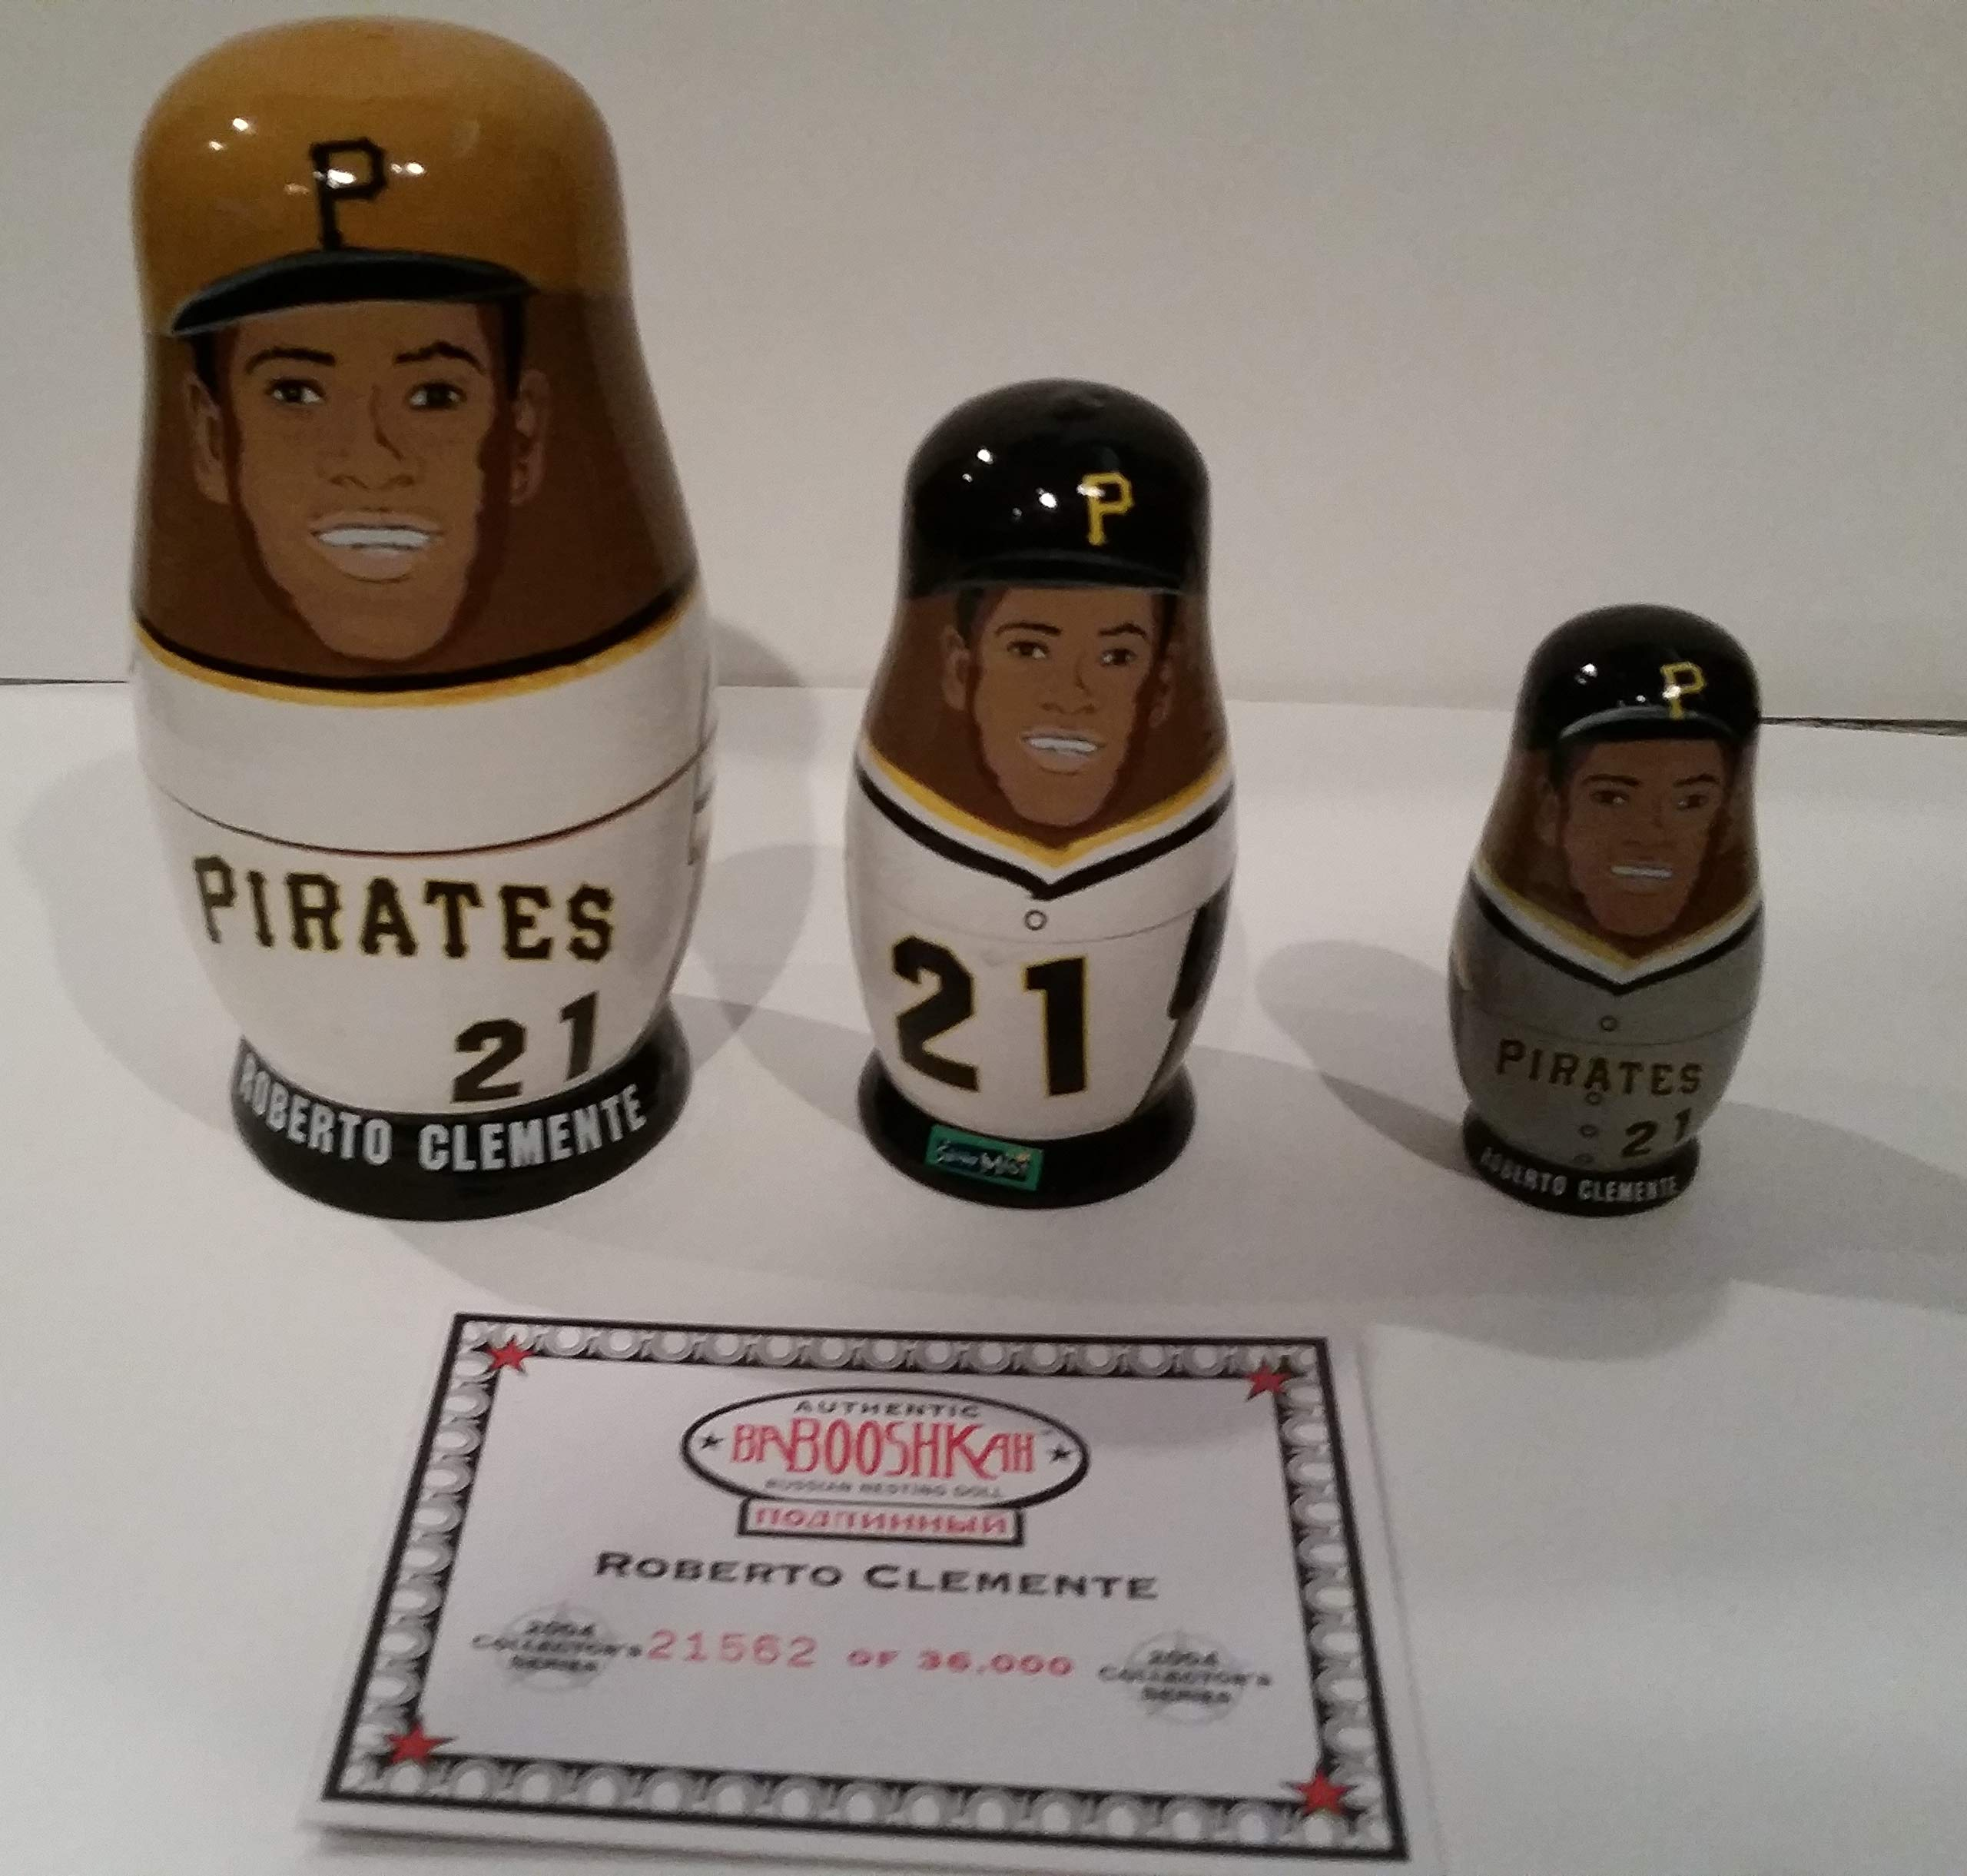 ROBERTO CLEMENTE RUSSIAN NESTING DOLLS PITTSBURGH PIRATES #2,1562/36,000